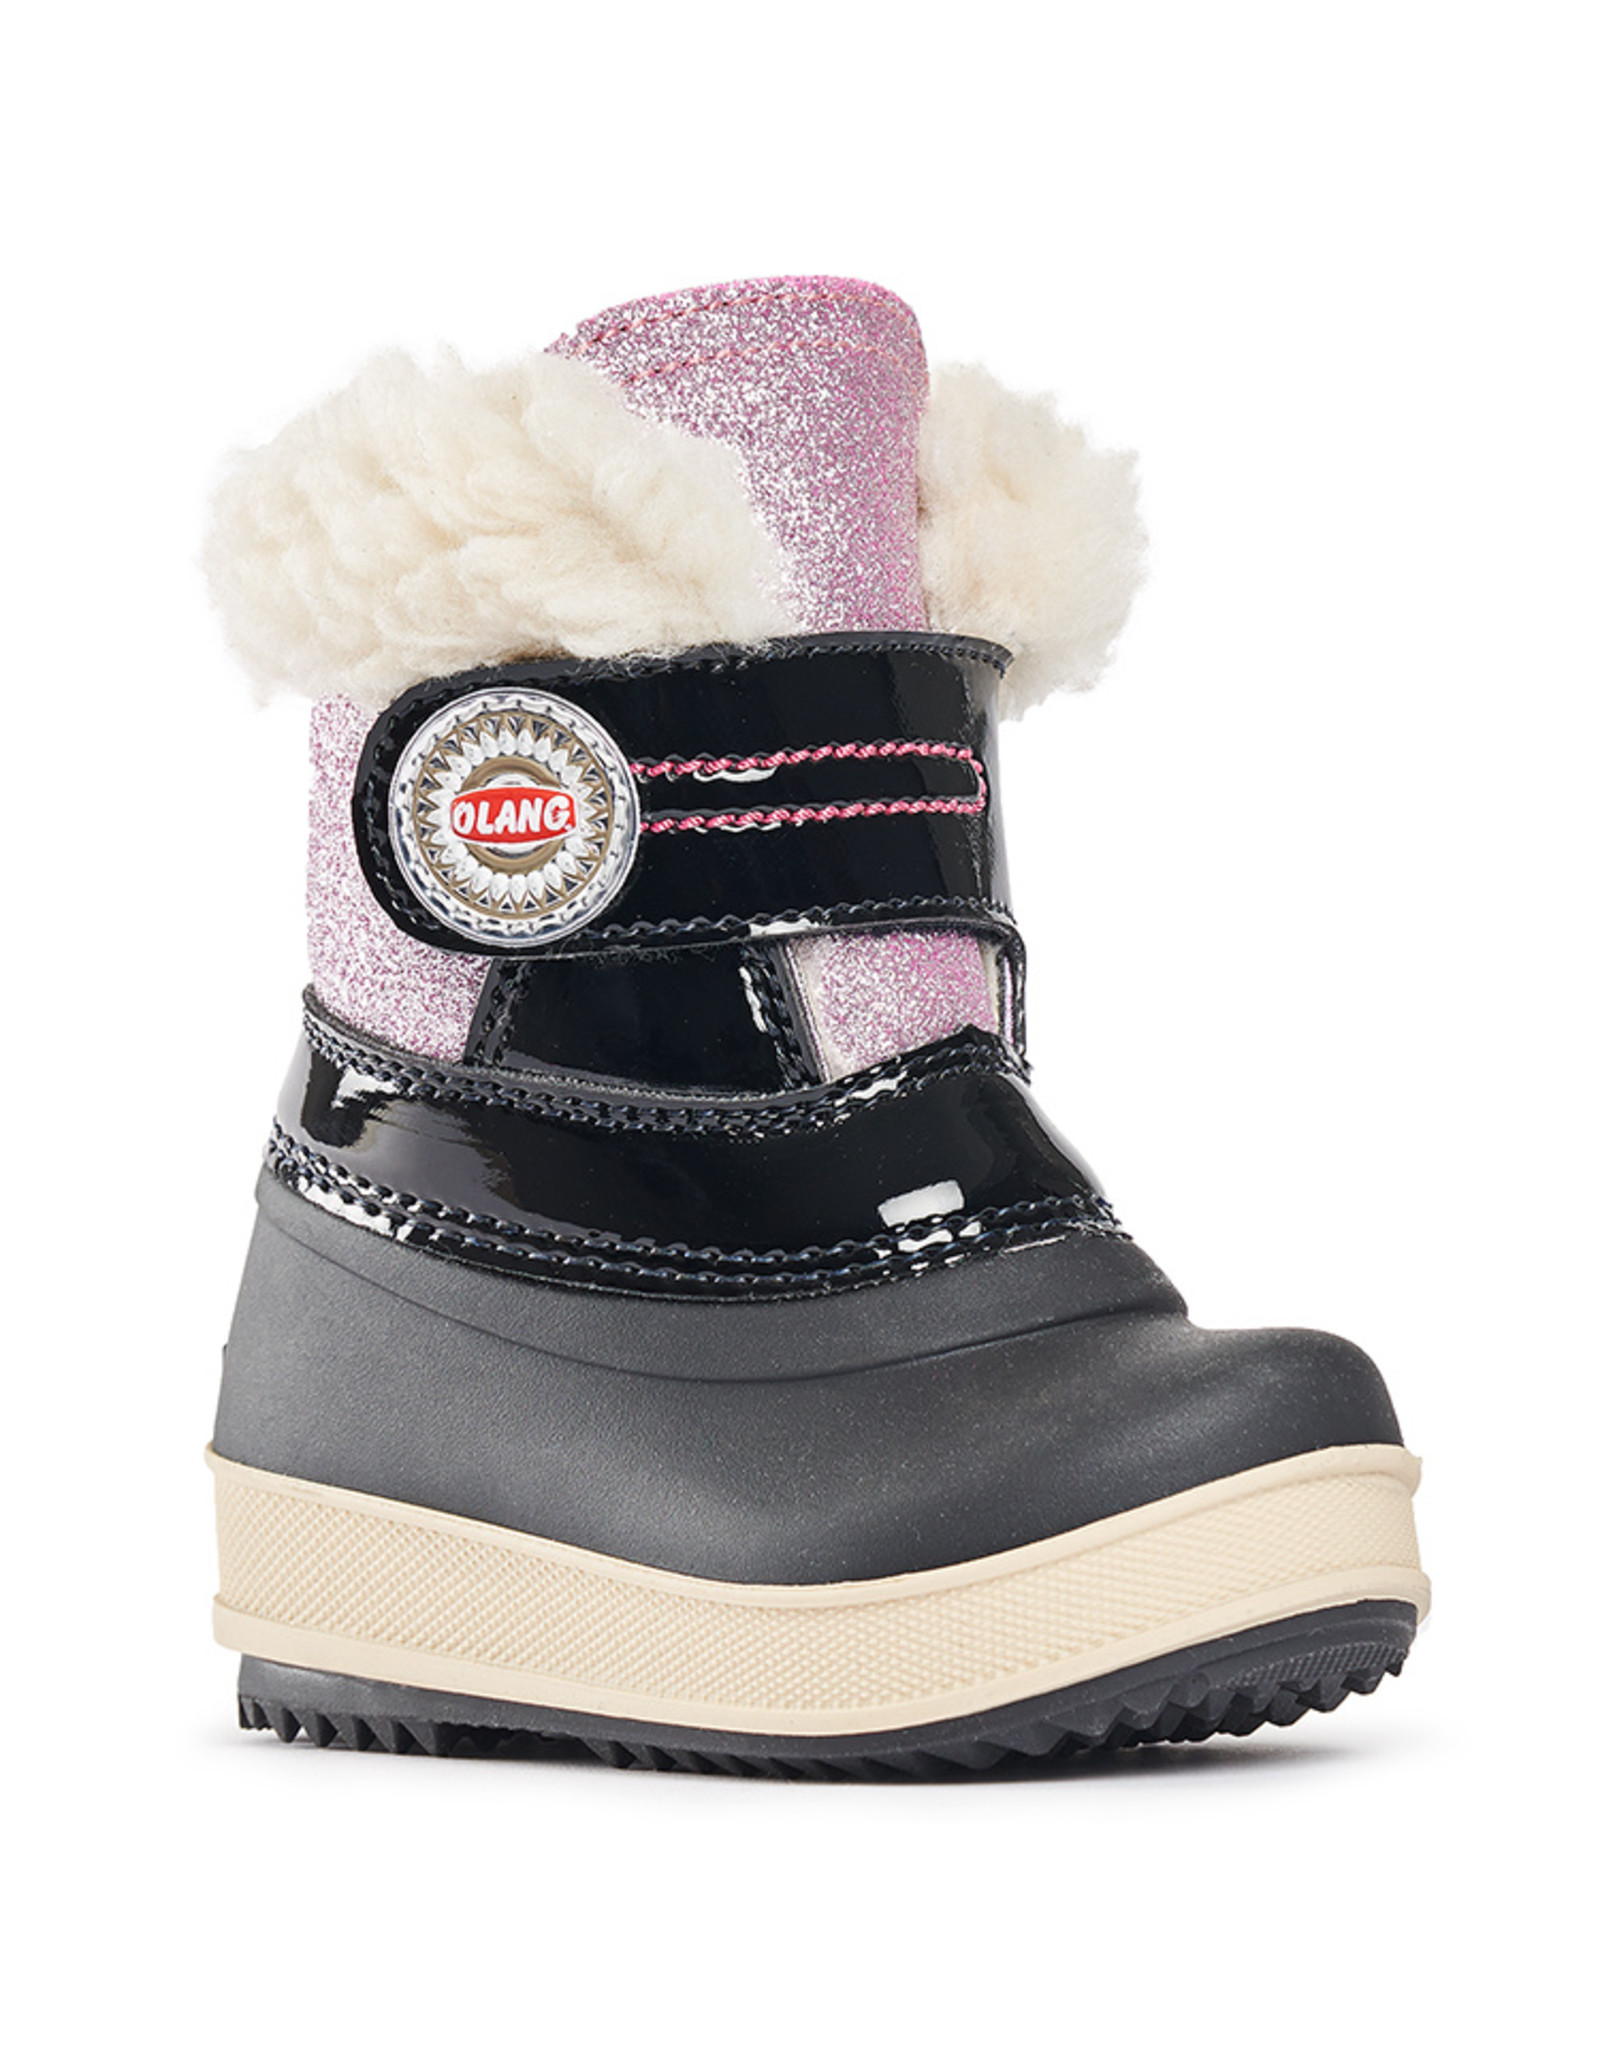 OLANG OLANG SNOW BOOTS